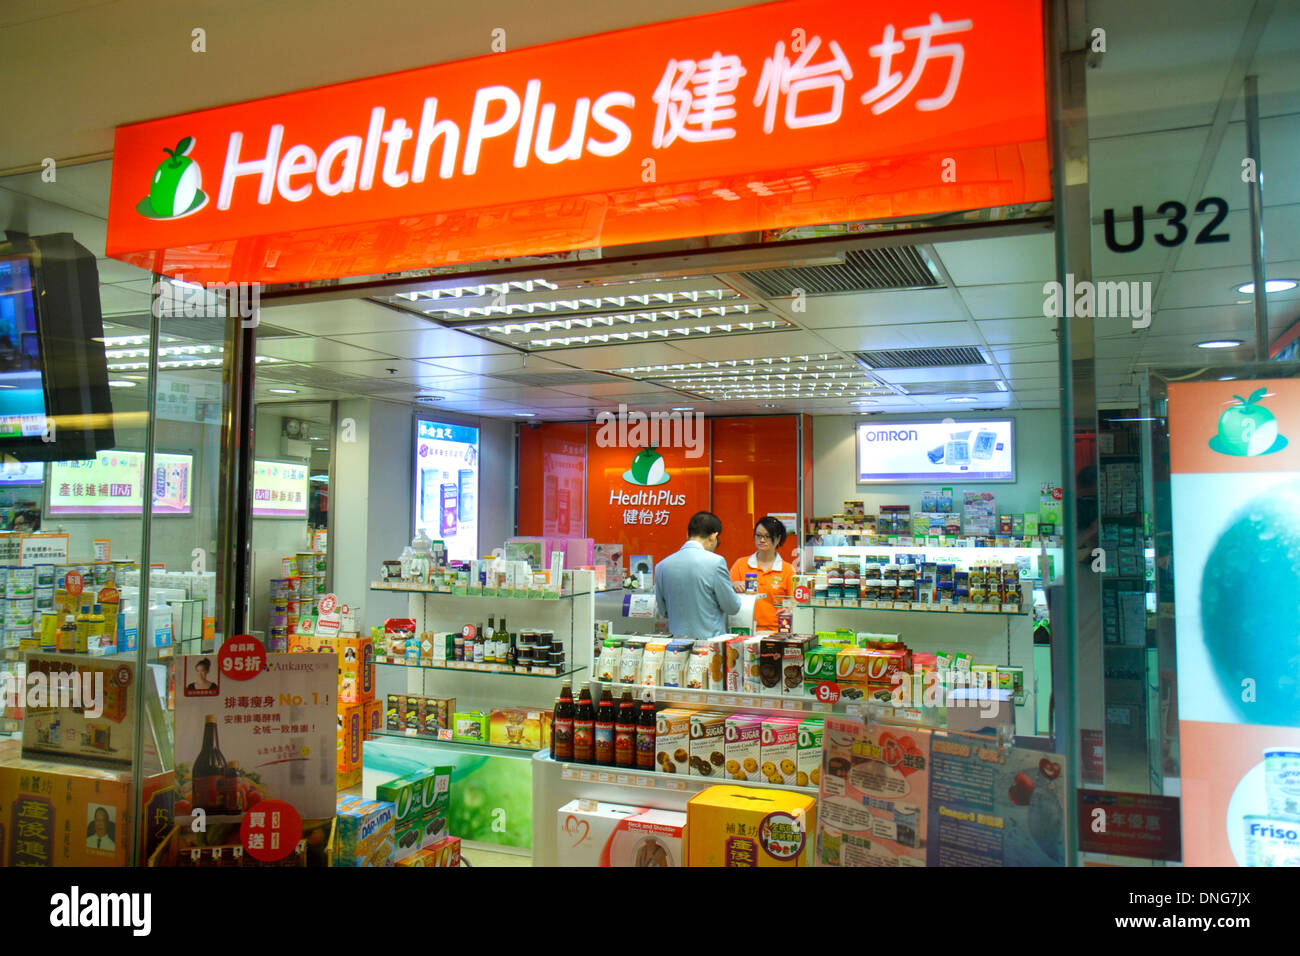 Chinese health herbal medicine supplement - Hong Kong China Island North Point King S Road Health Plus Dietary Store Sale Display Front Entrance Supplements Herbal Medicine